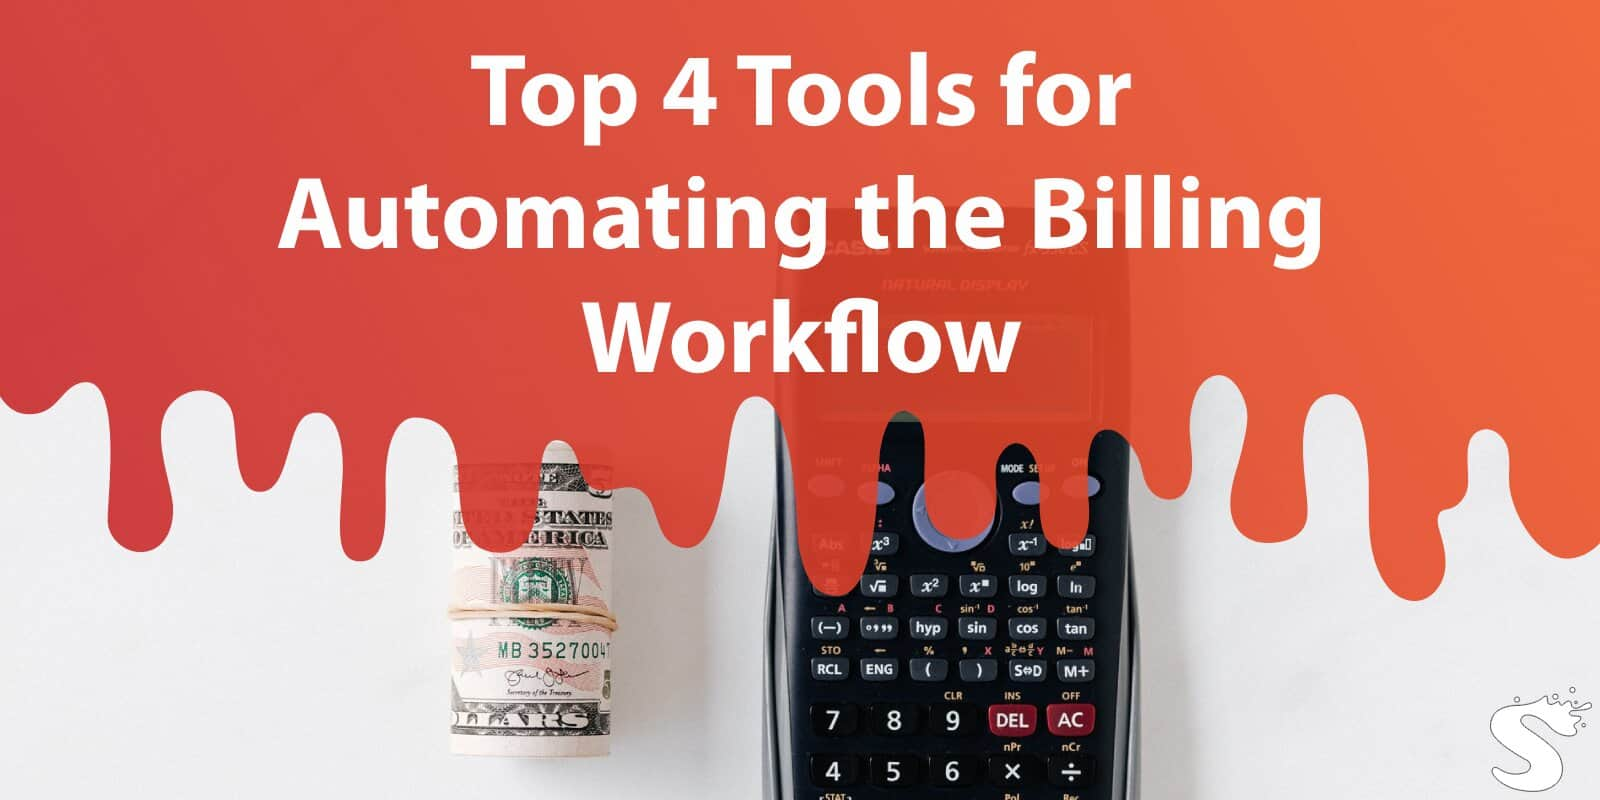 Top 4 Tools for Automating the Billing Workflow